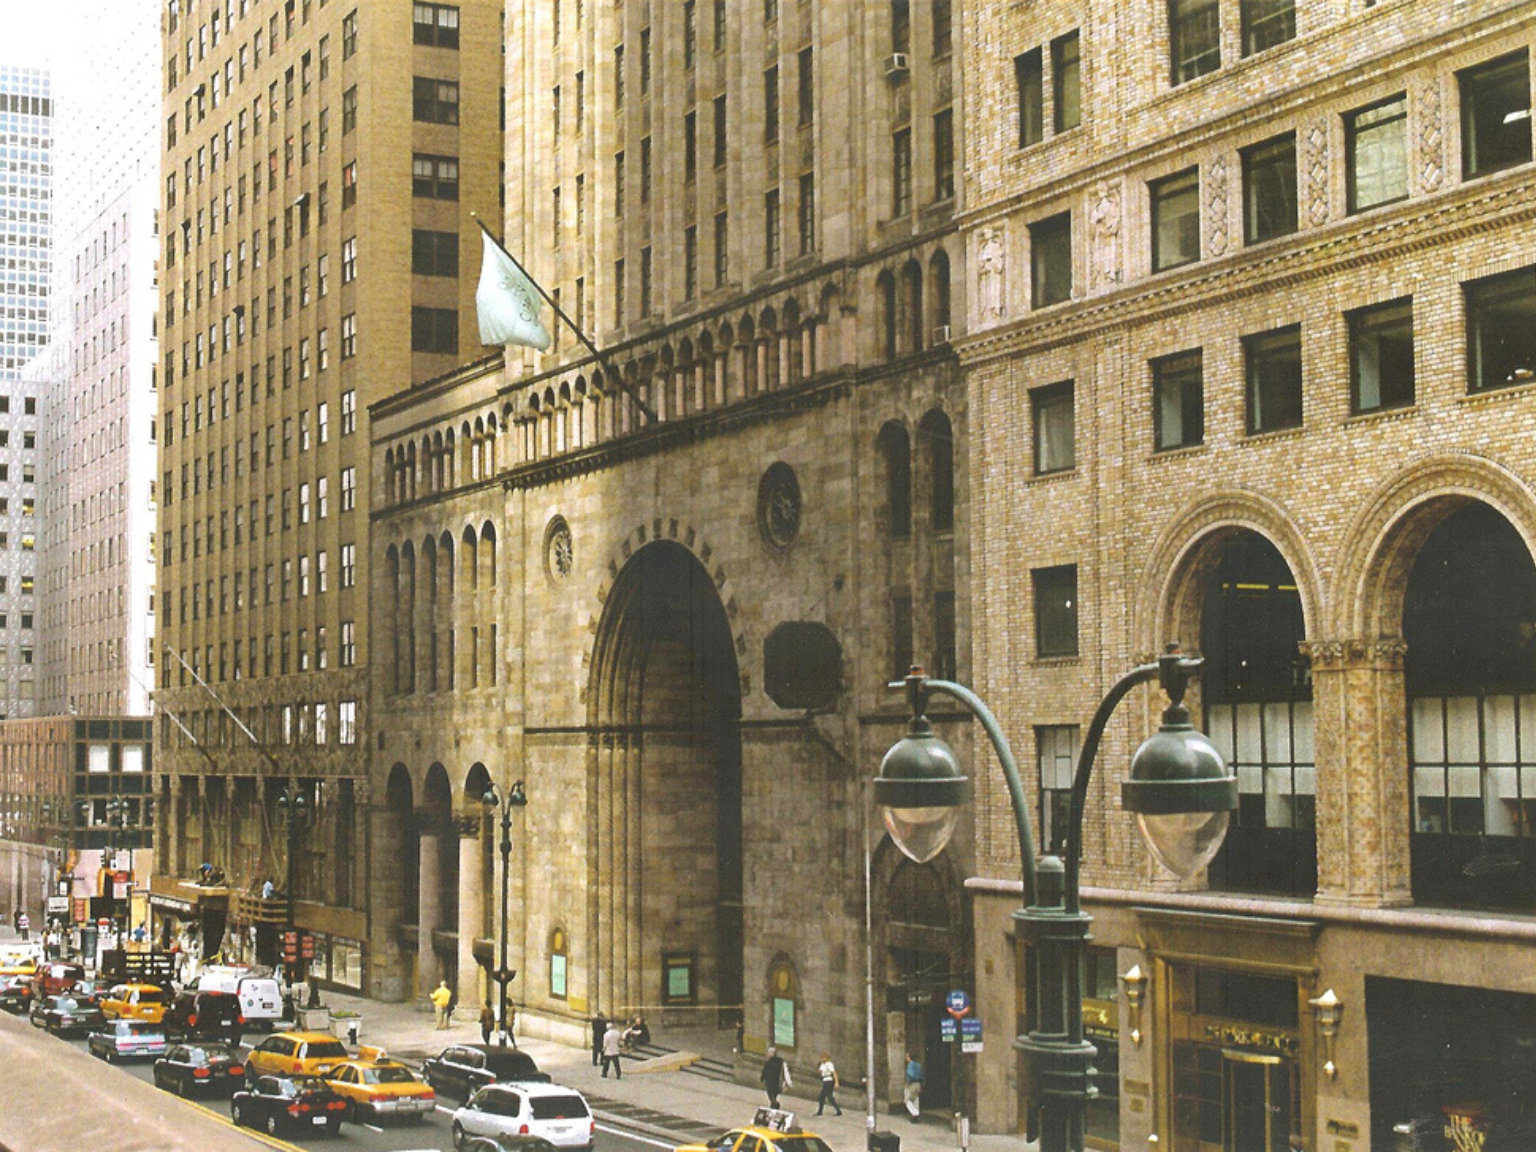 View of the Bowery Savings Bank from across the street